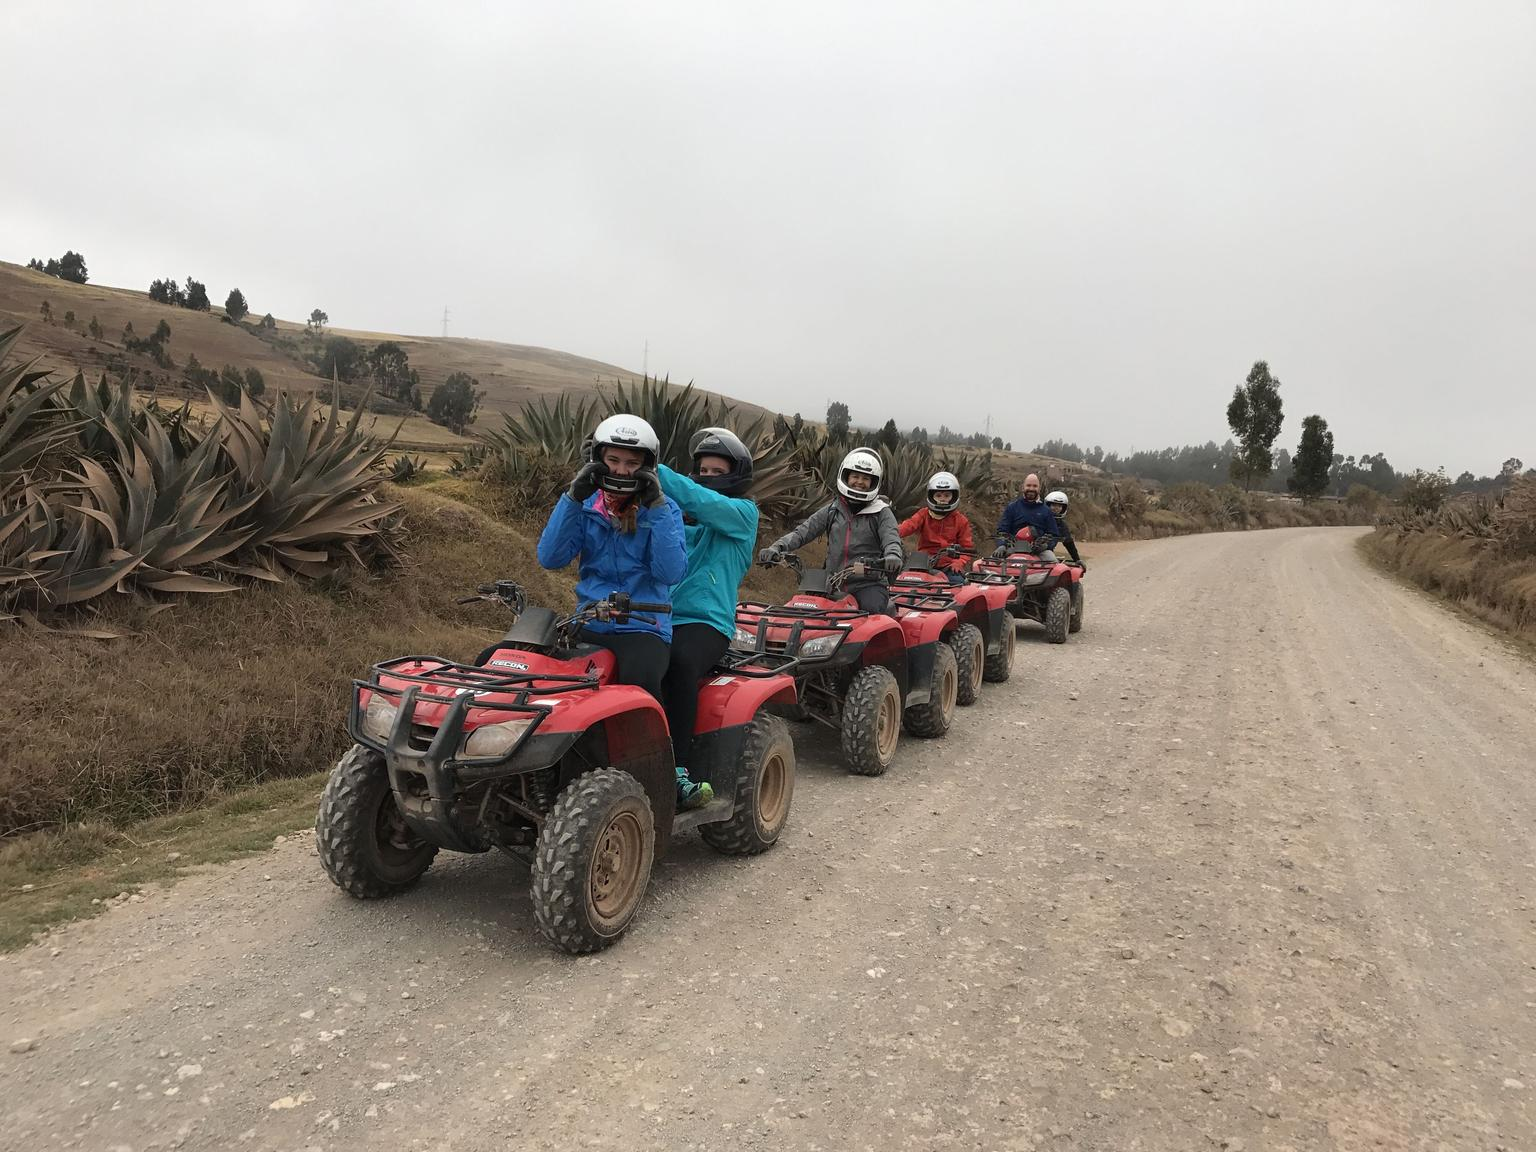 MORE PHOTOS, ATV Tour to Moray, Maras and Salt Flat in the Sacred Valley from Cusco